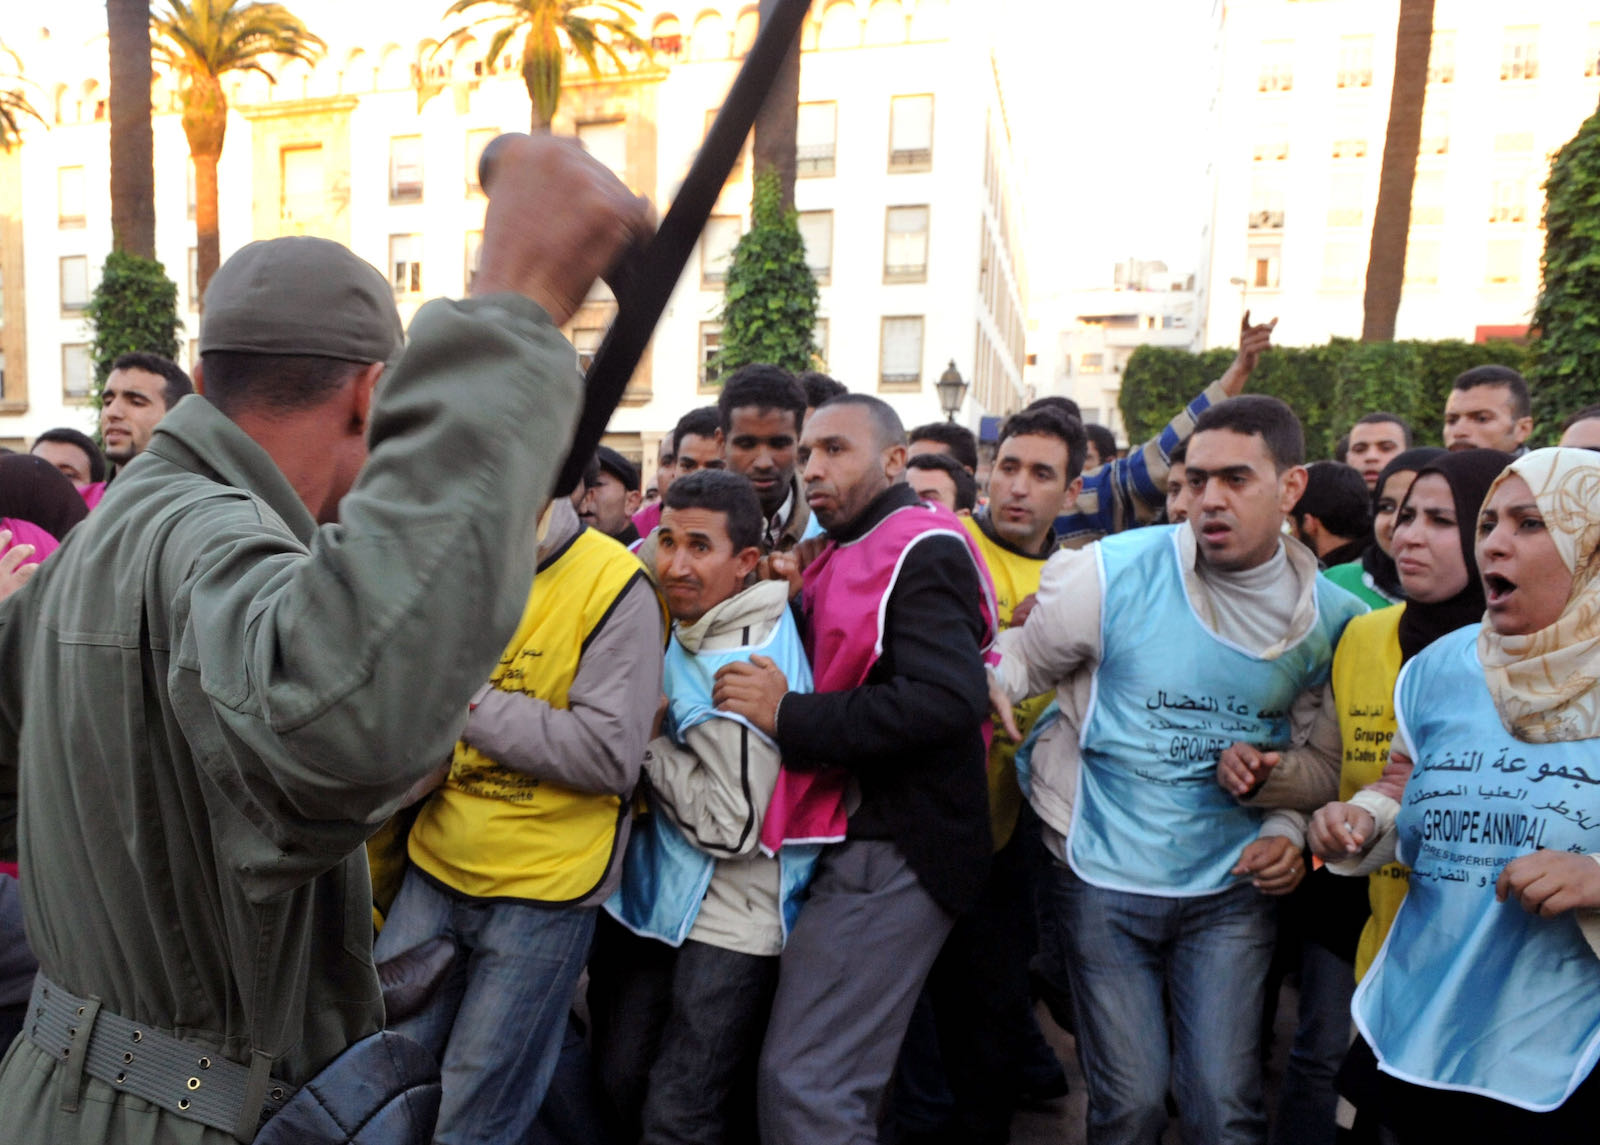 A security guard threatening anti-government protesters